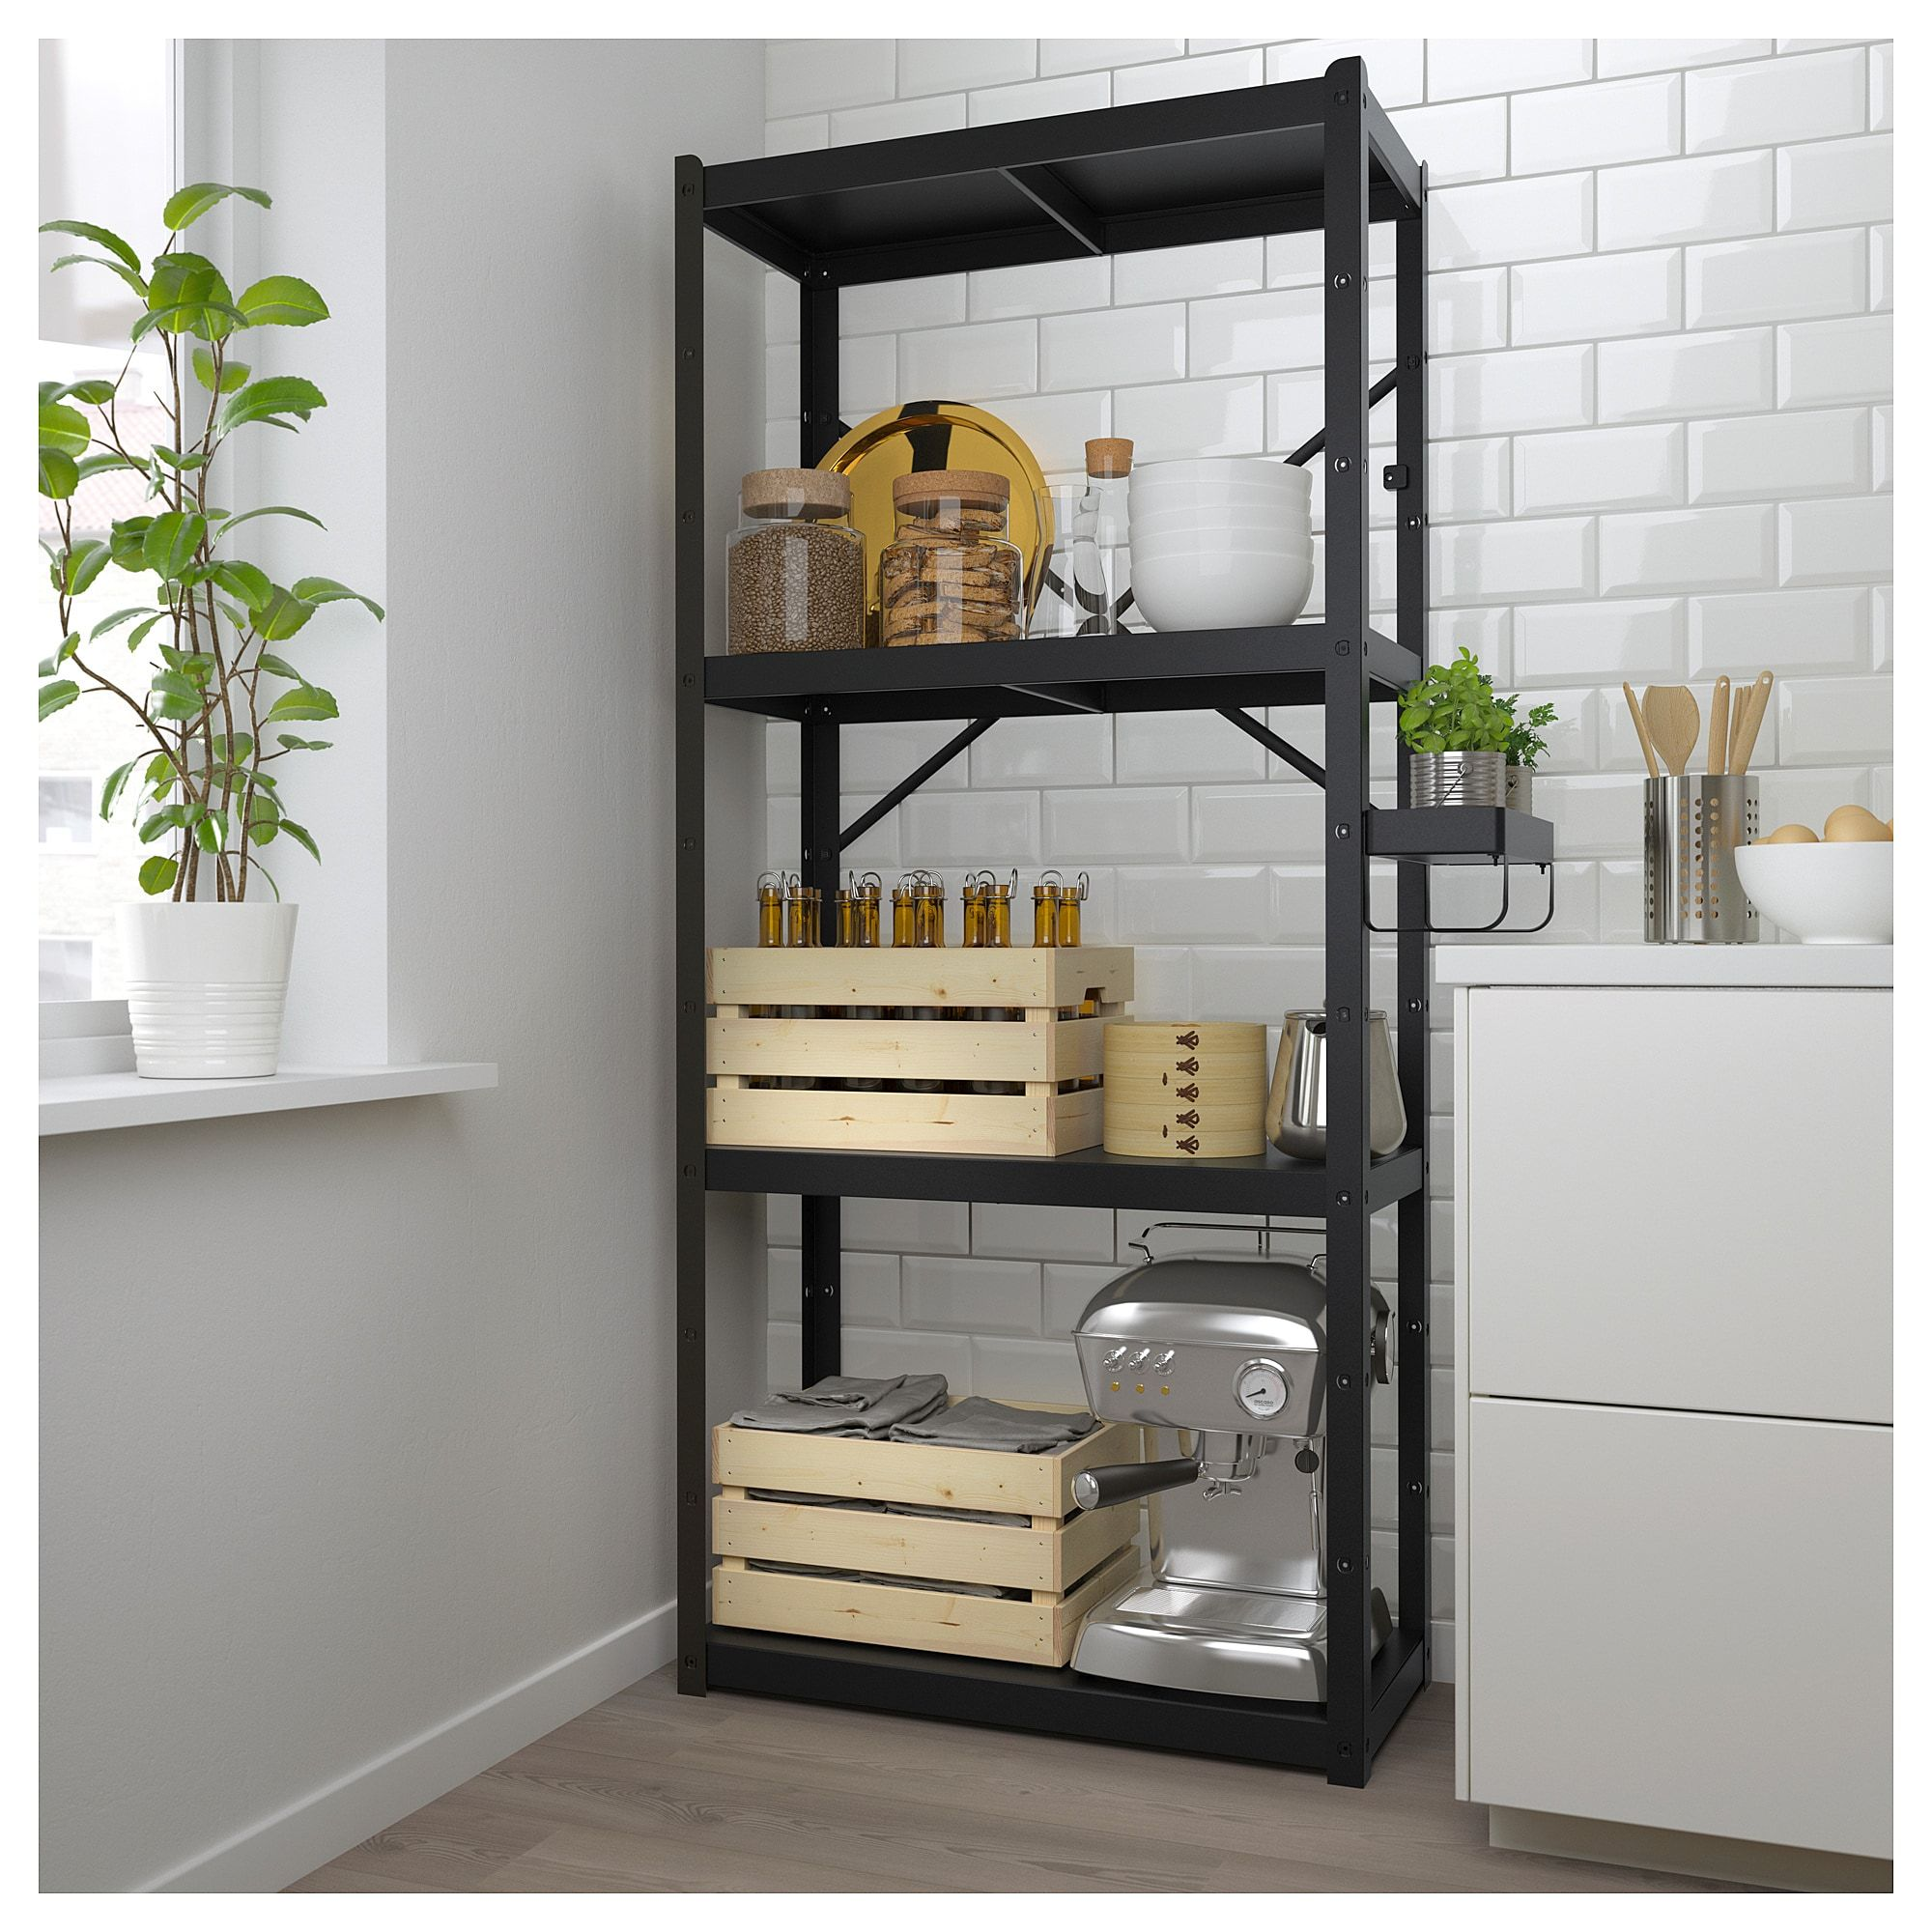 Ikea Bror Black Shelving Unit In 2019 Home Sweet Home